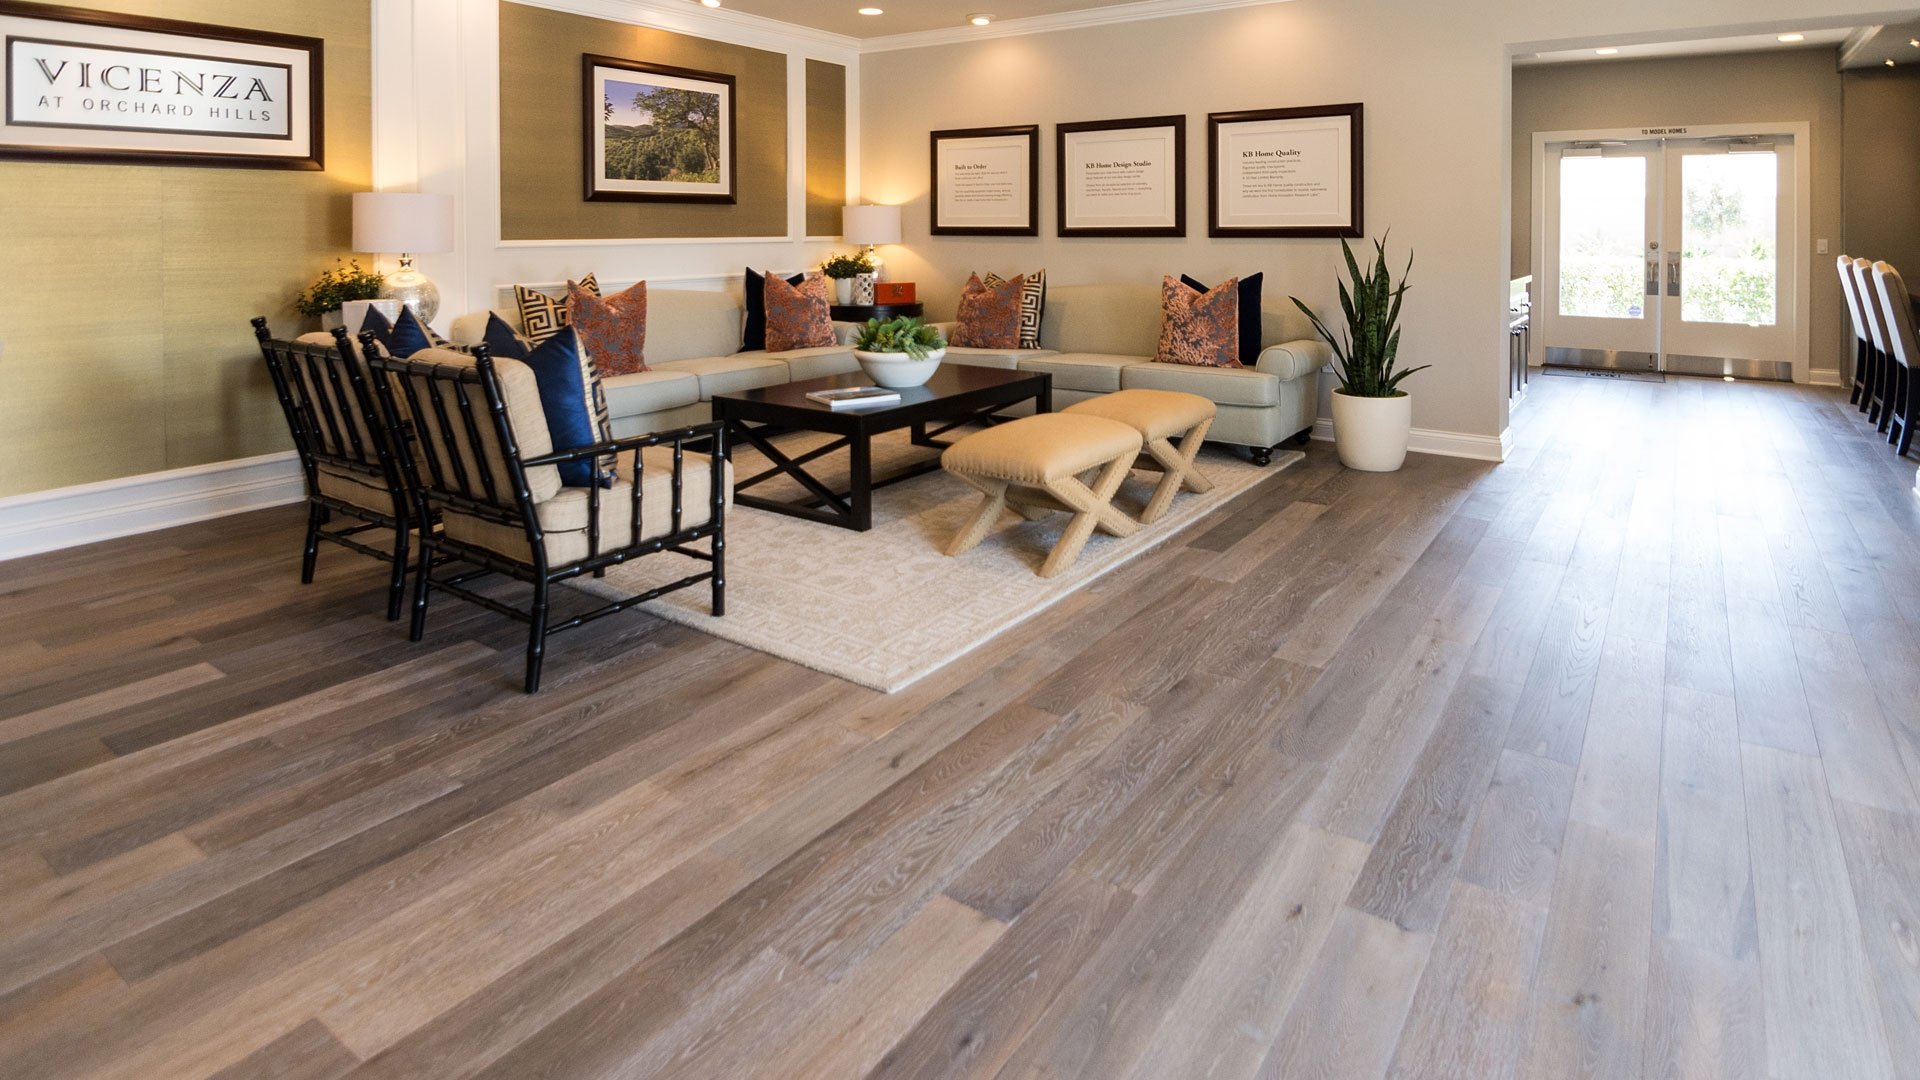 Provenza Heirloom Wood Floors